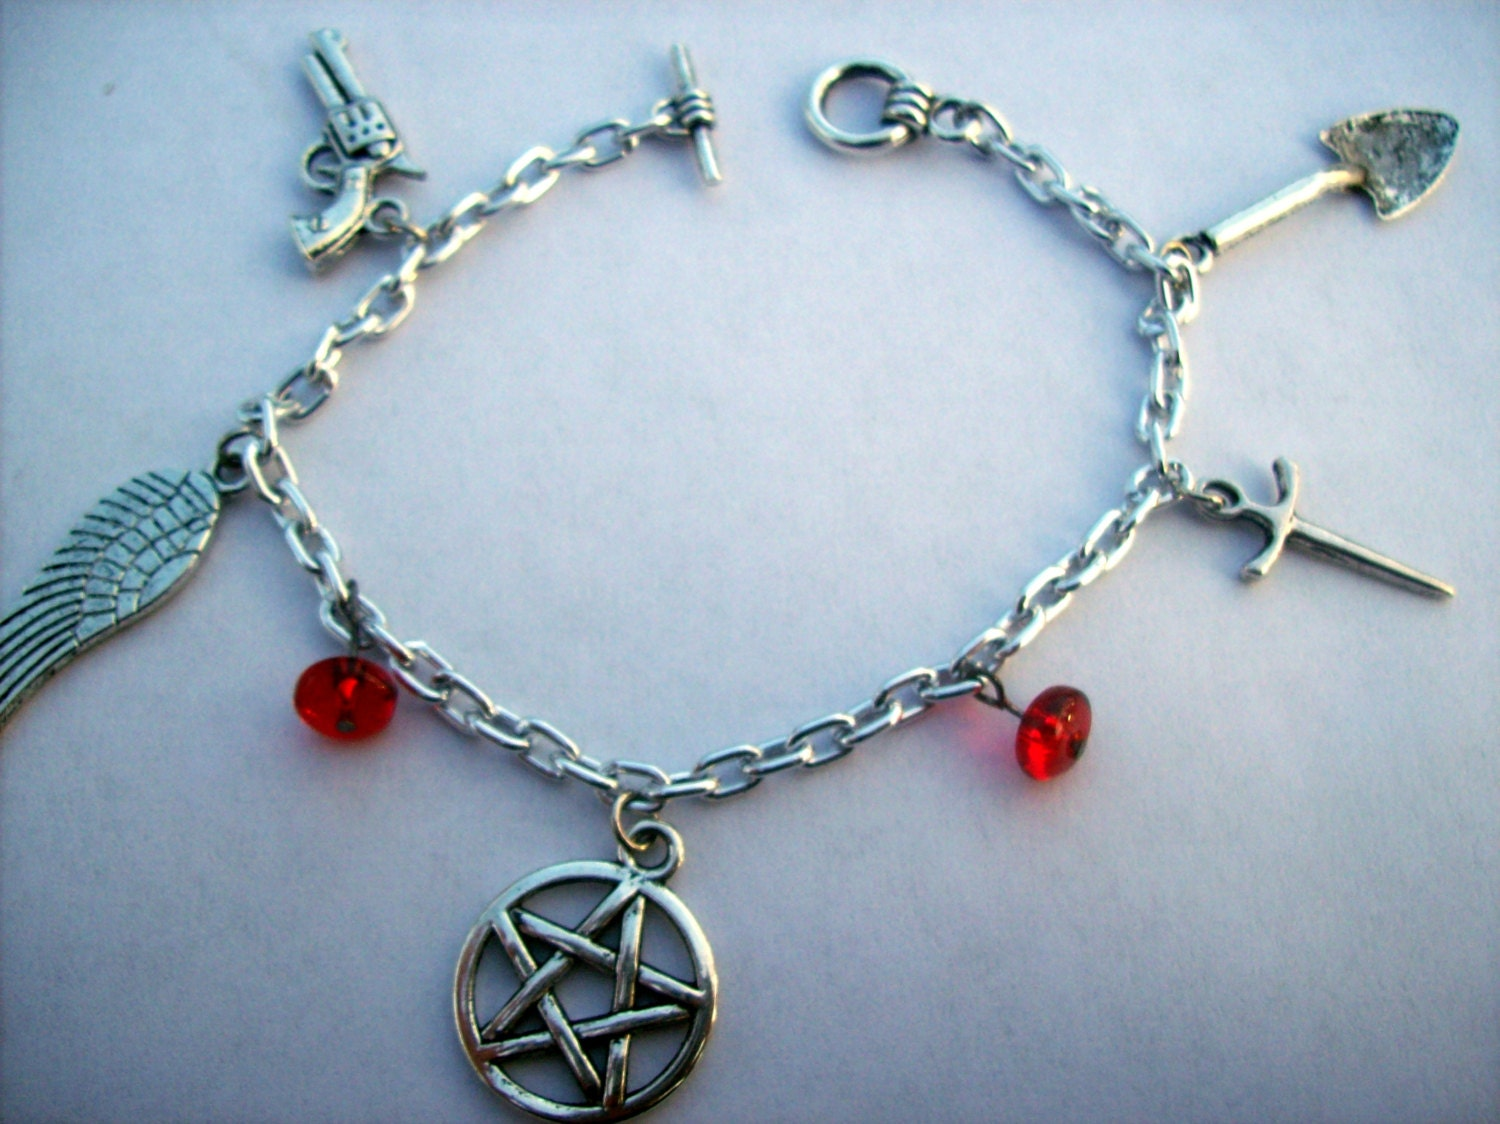 supernatural inspired charm bracelet by jinxyjewels on etsy